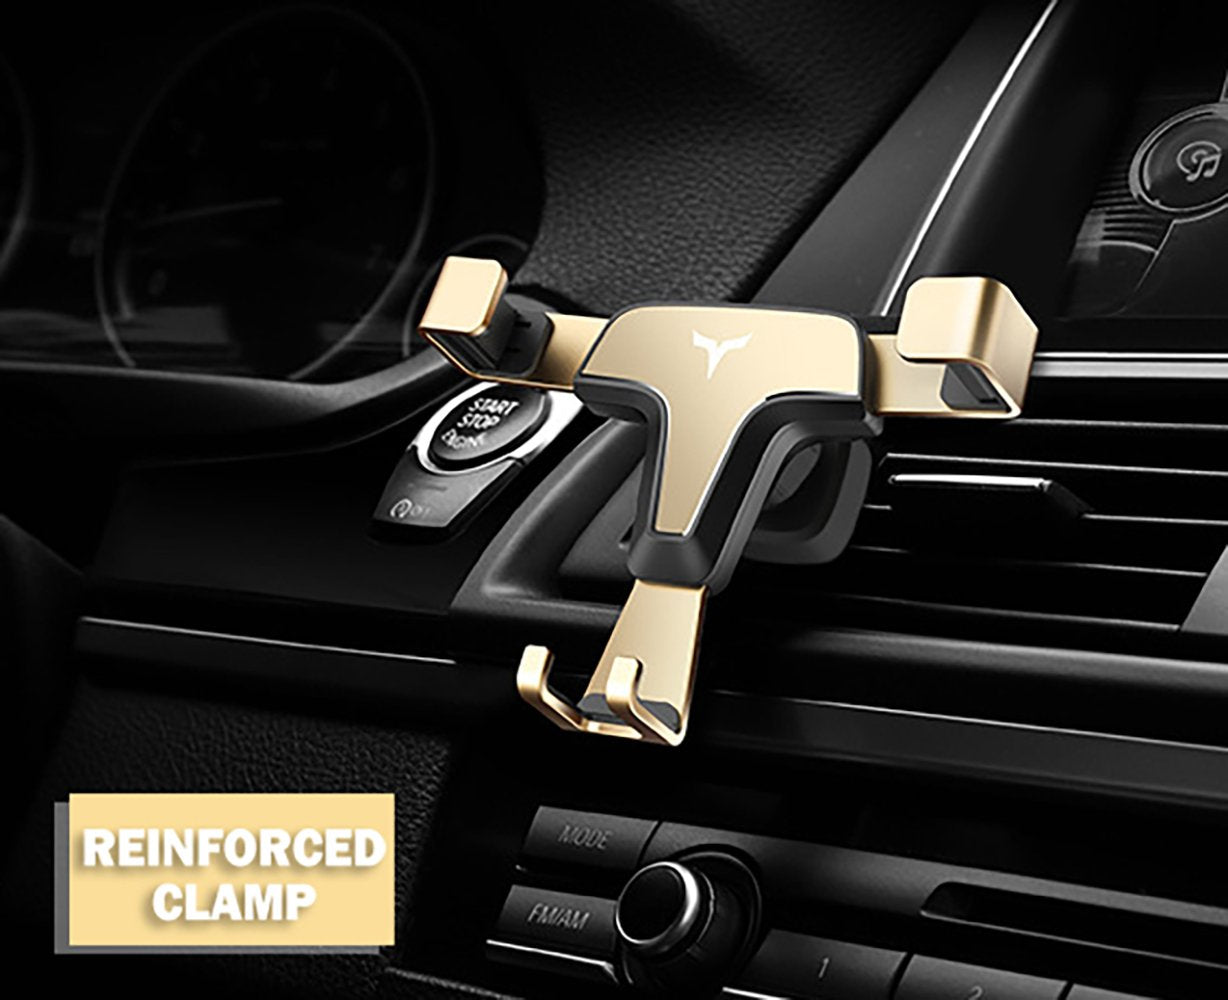 HYTX Universal Gravity Car Cell Phone Holder/Mount - Hands Free Auto Lock Air Vent Cradle Mobile Phone Holder, Compatible with iPhone 11 Pro Xs MAX X 8 7 6 Plus Samsung S9 S8 Note (Gold)